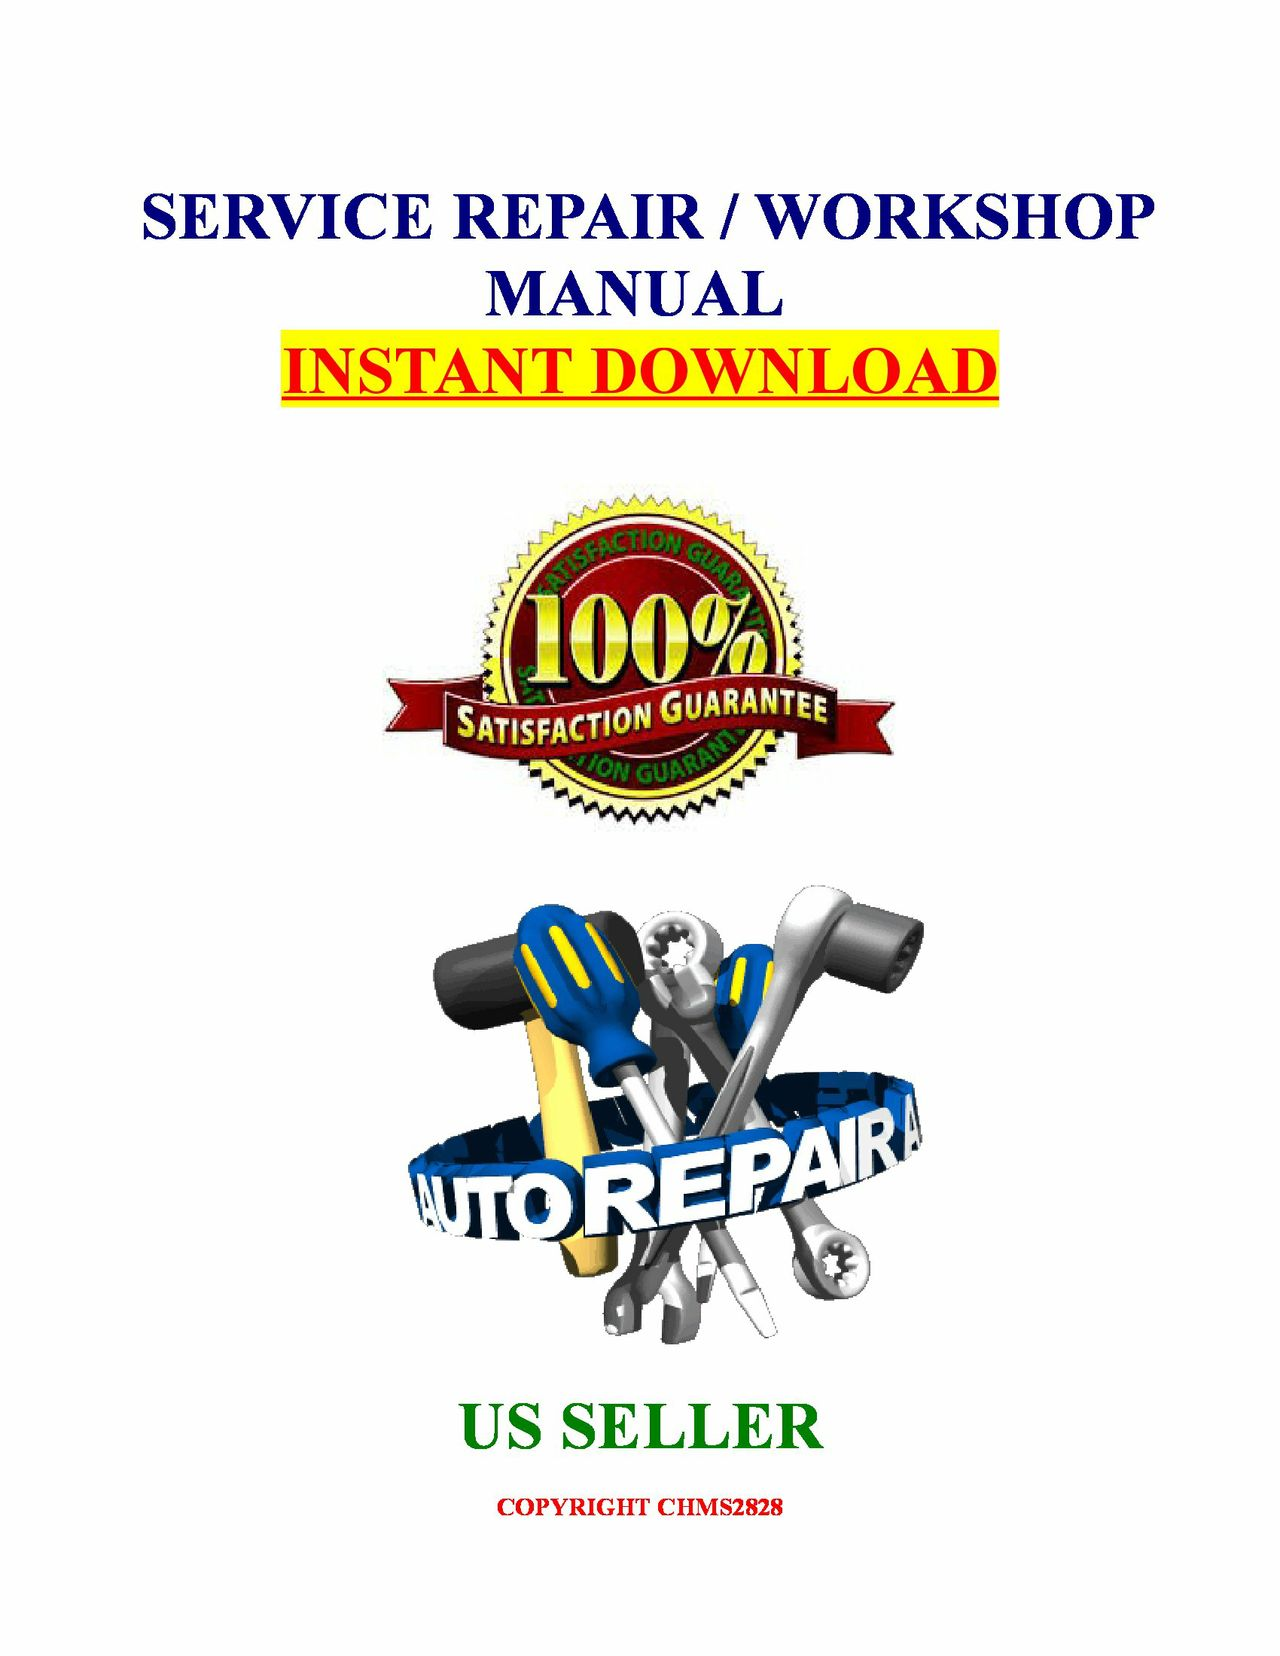 2000 Daewoo Leganza Exhaust Diagram Schematics Wiring Lanos Service Repair Manual Free Downloa Problems